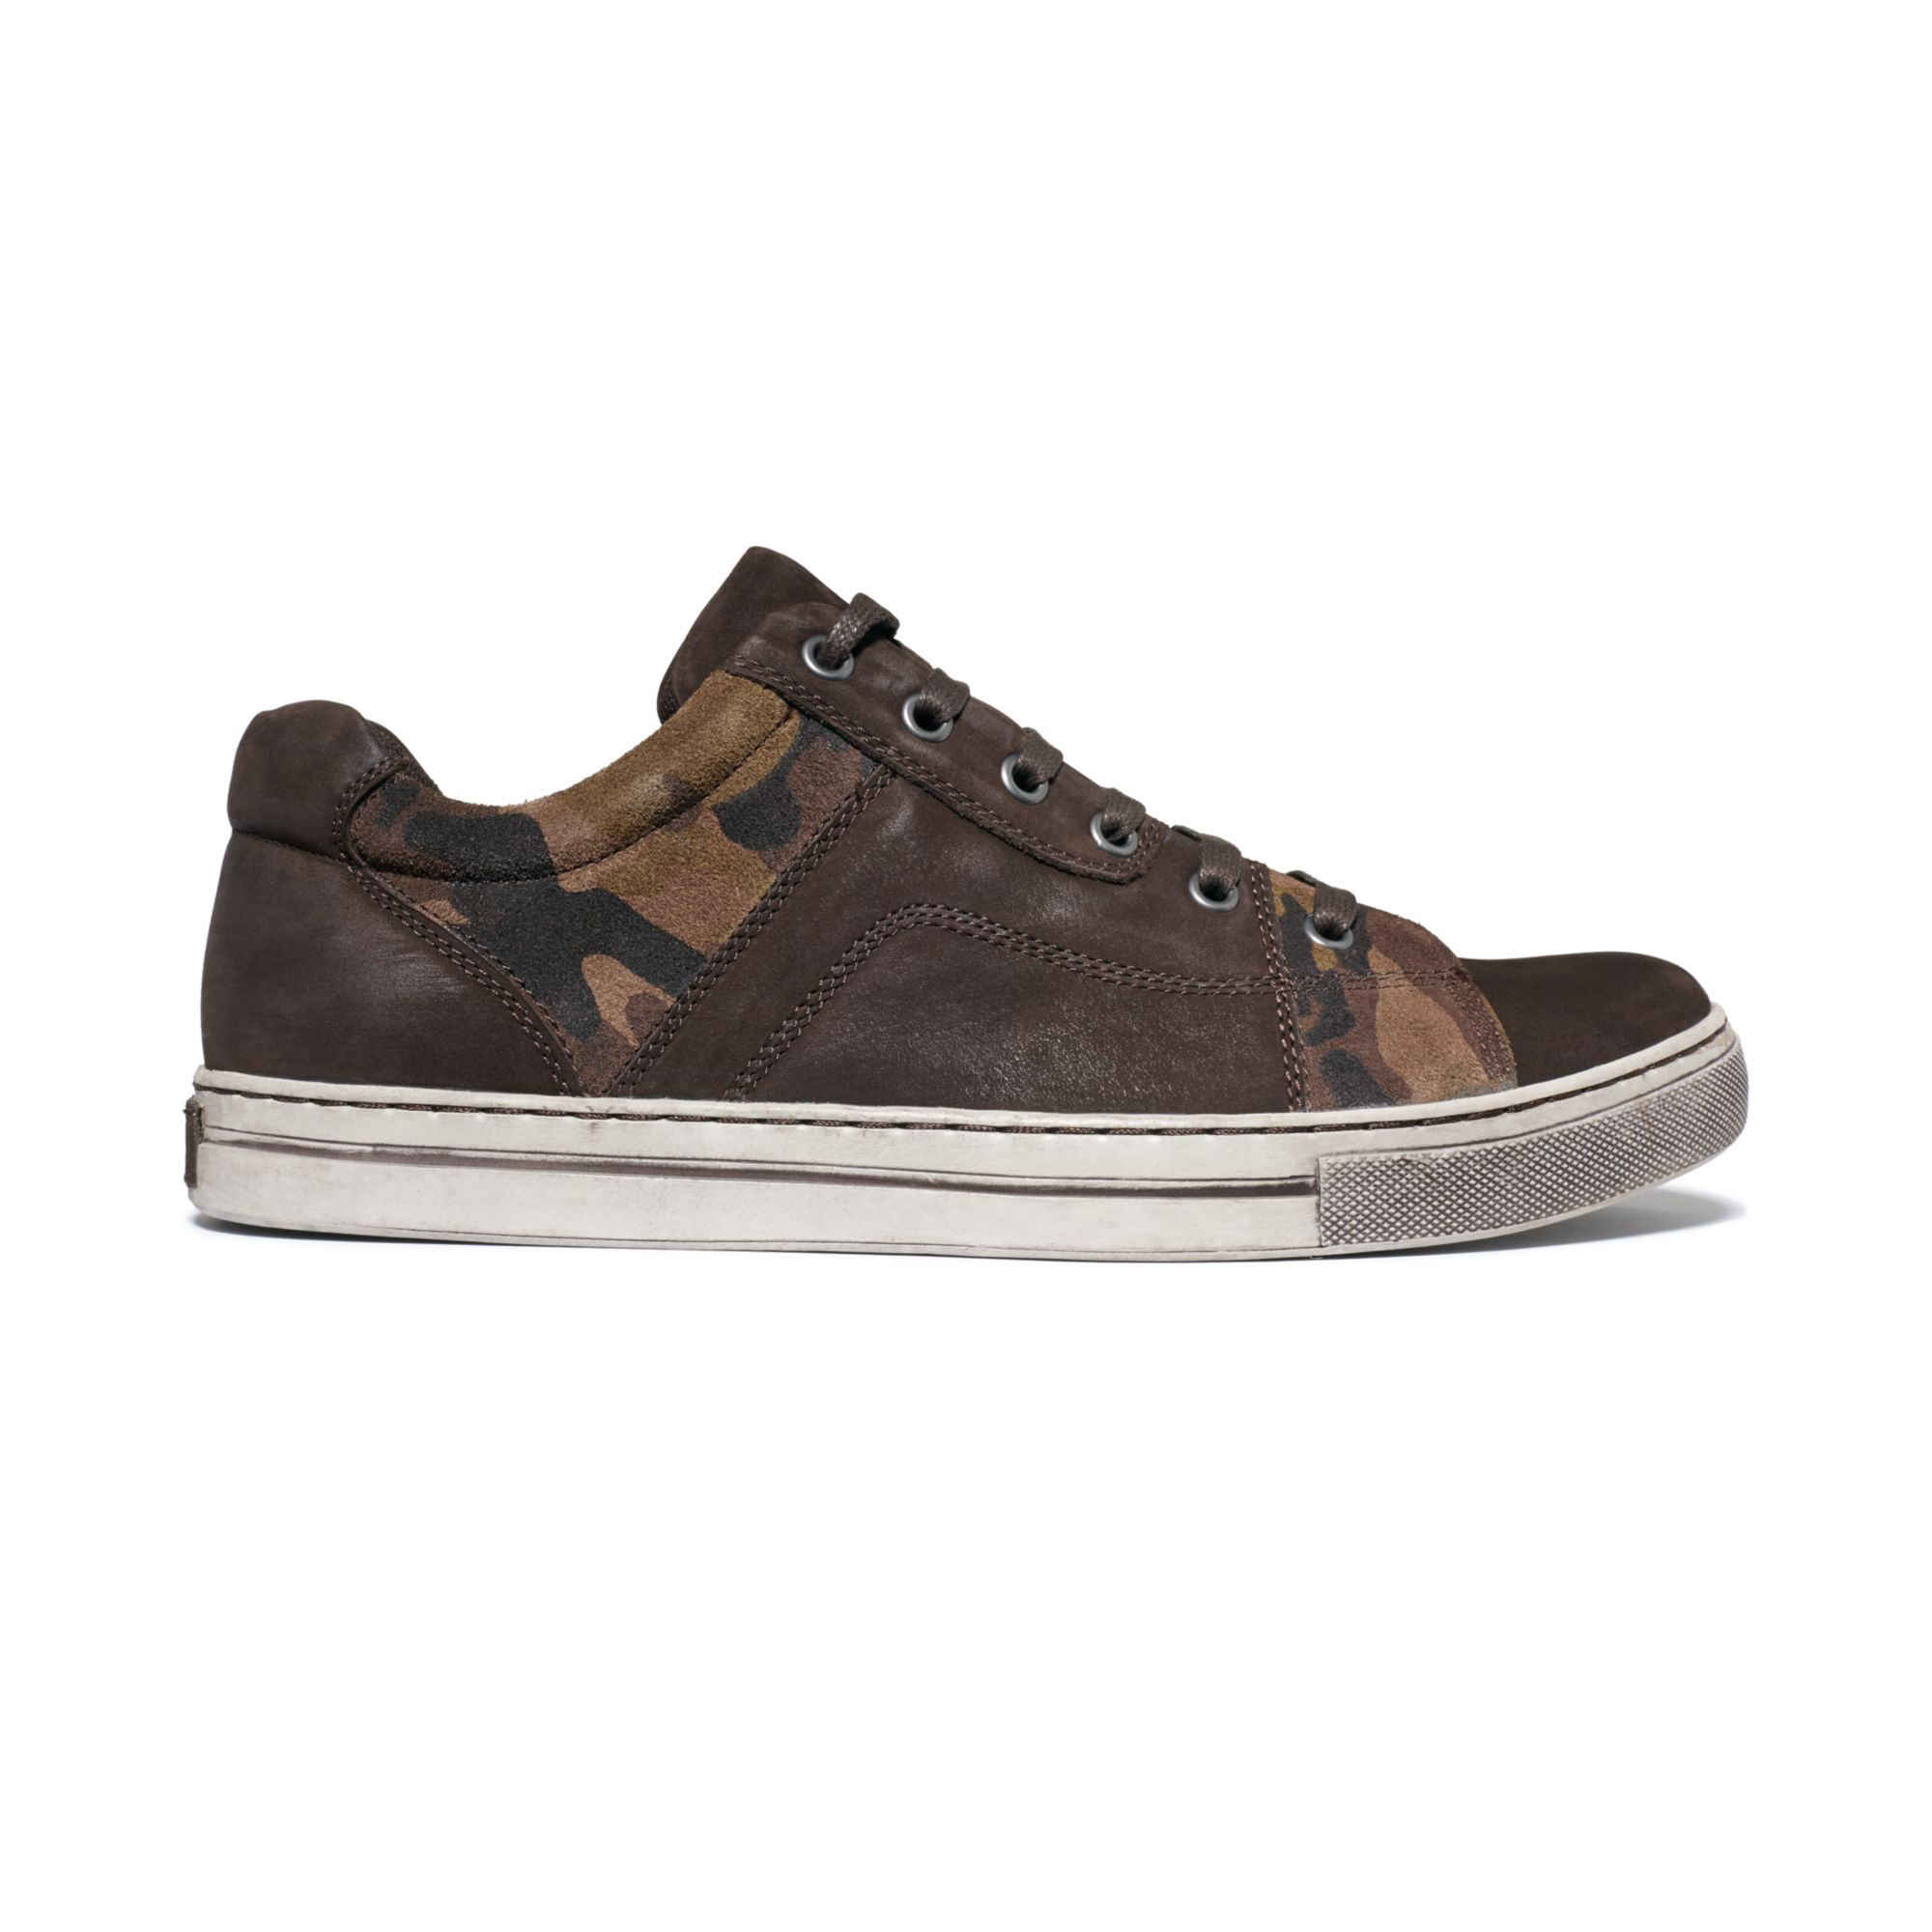 Kenneth Cole Daily Double Camo Shoes in